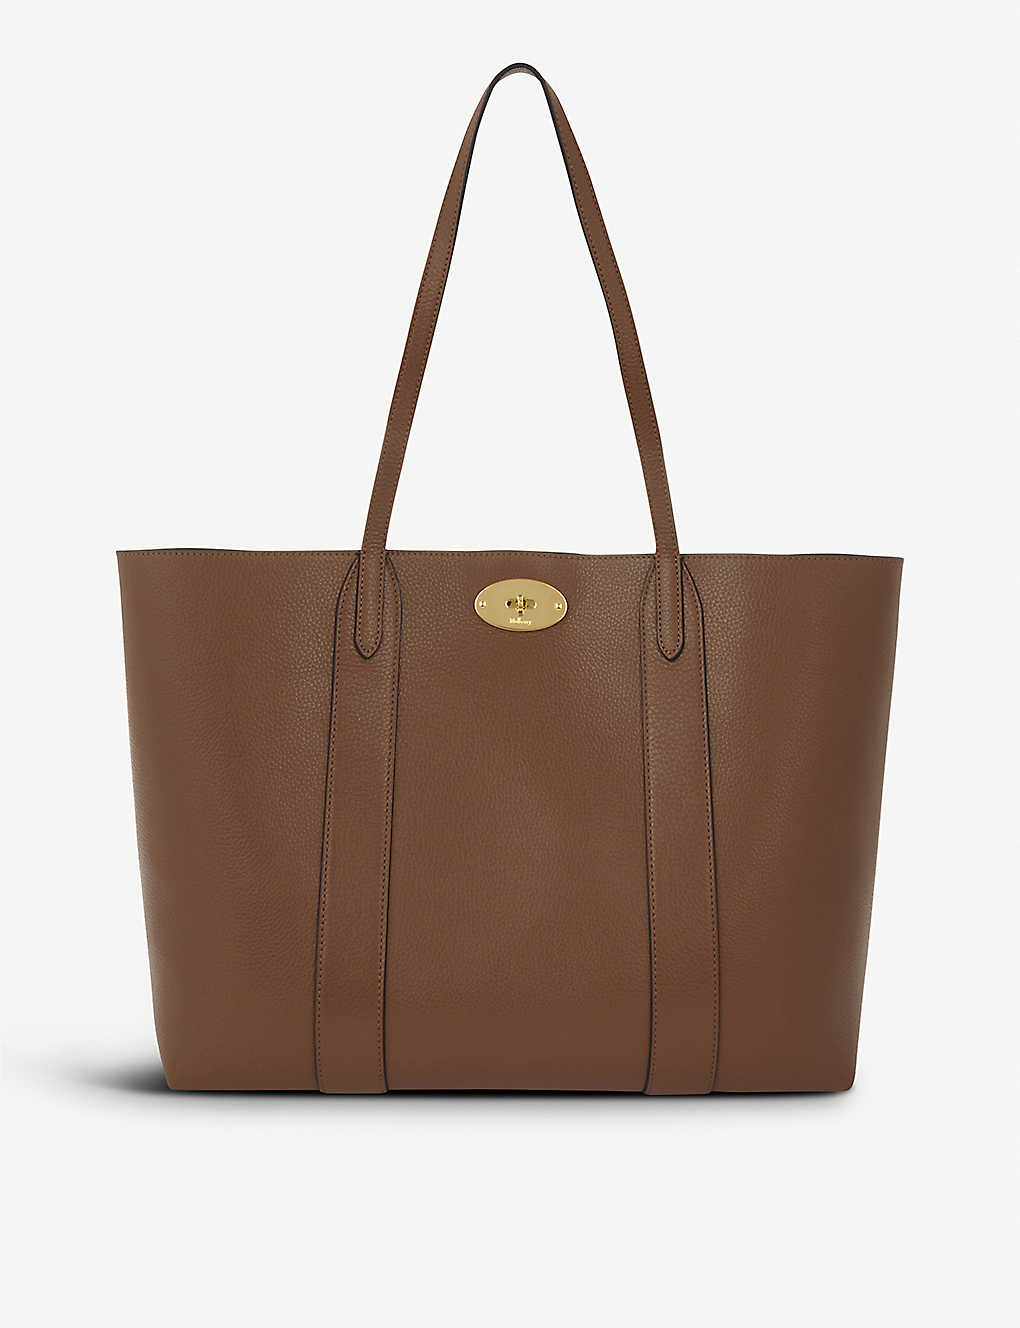 MULBERRY - Bayswater leather tote bag  96b41d7447d2d